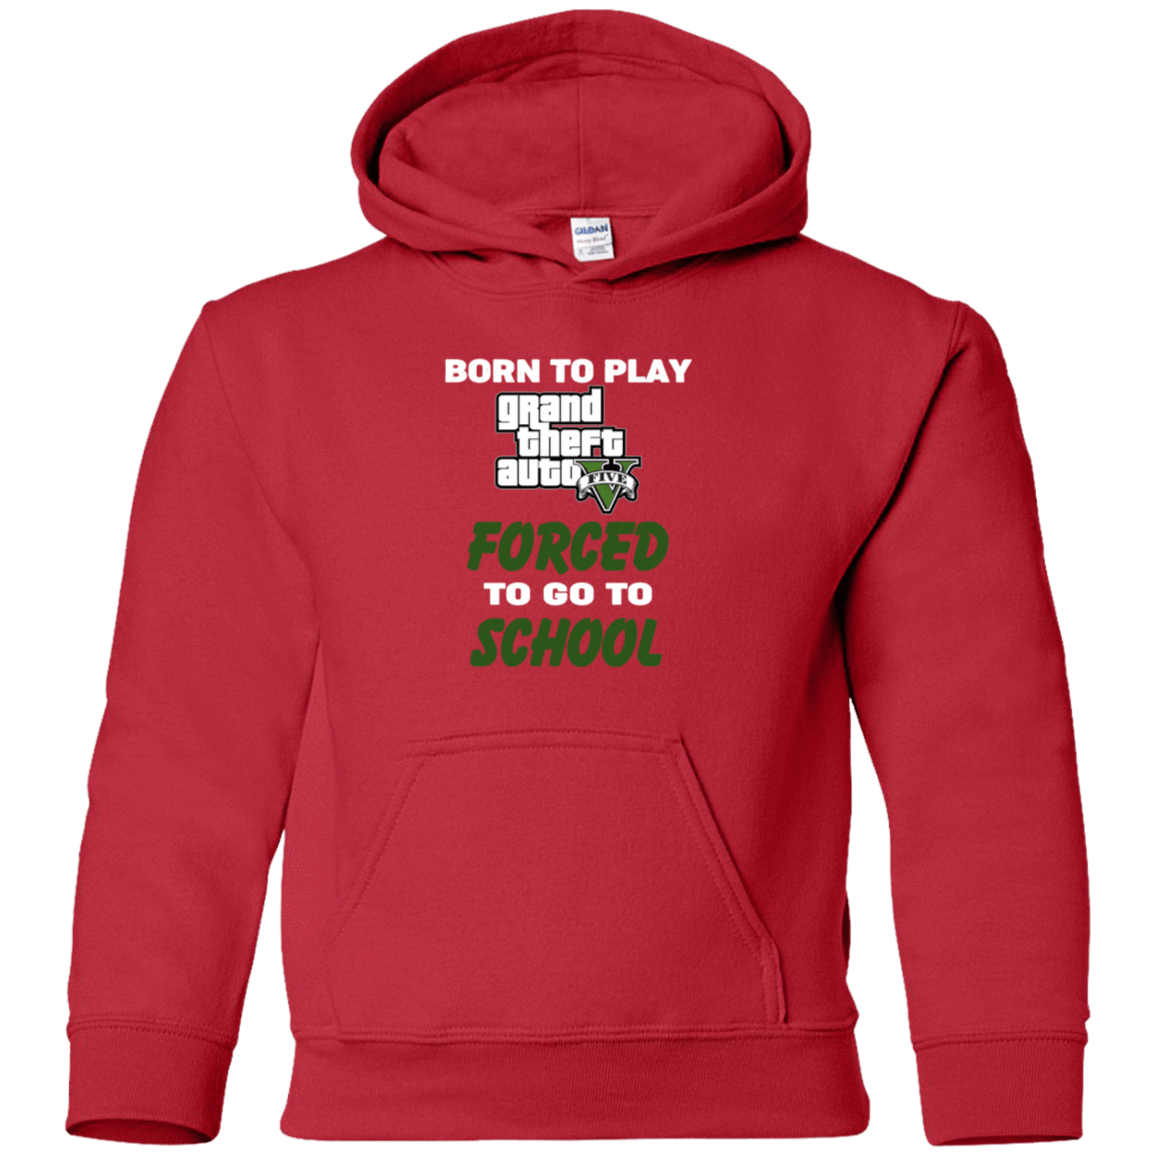 Born To Play Grand Theft Auto Forced To Go To School 59-331-74209588-1258 - Tee Ript